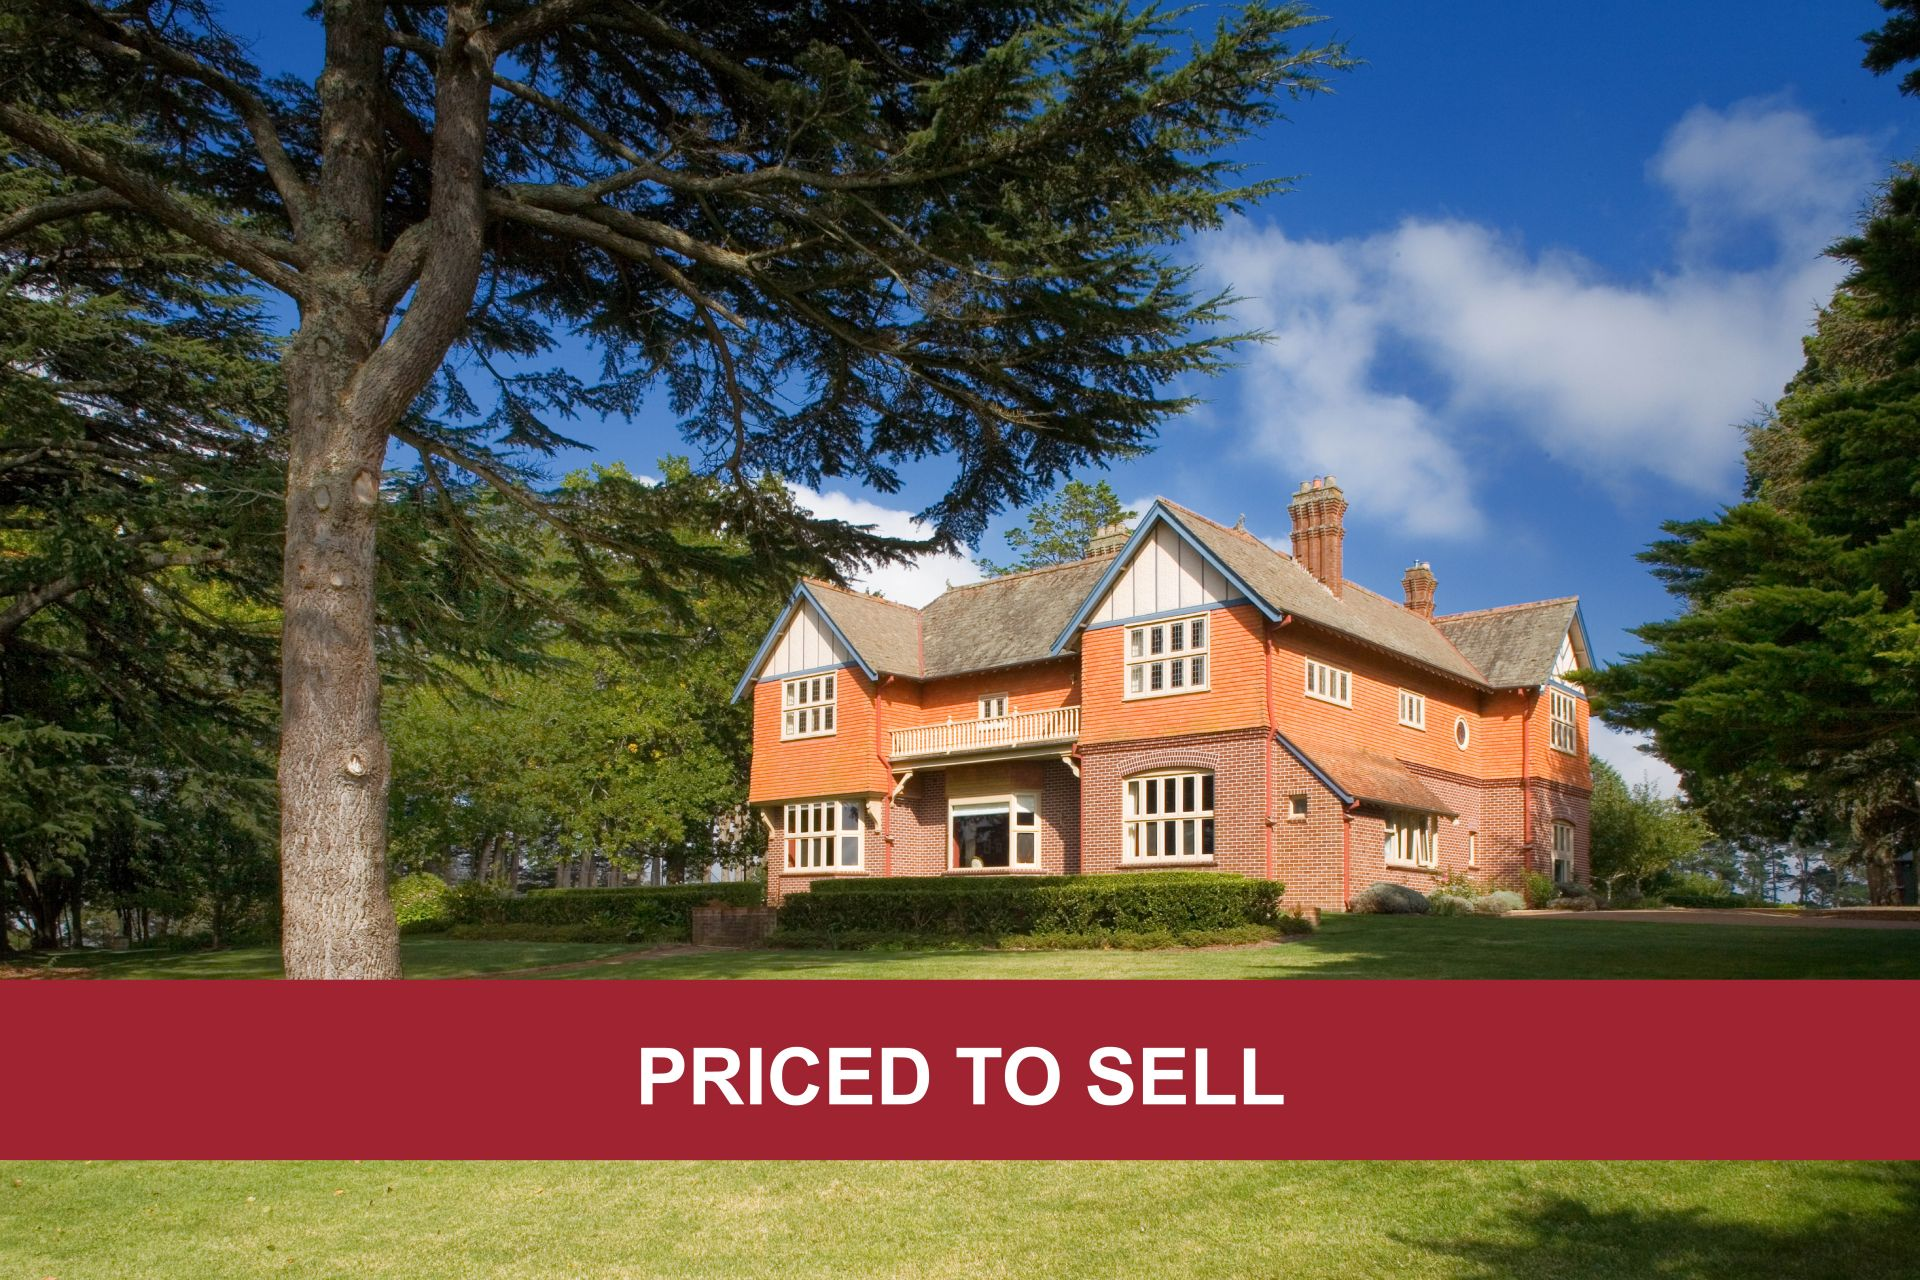 Fattoria / ranch / campagna per Vendita alle ore **PRICED TO SELL** Highfield - An historic English style country estate Sutton Forest, New South Wales,2577 Australia